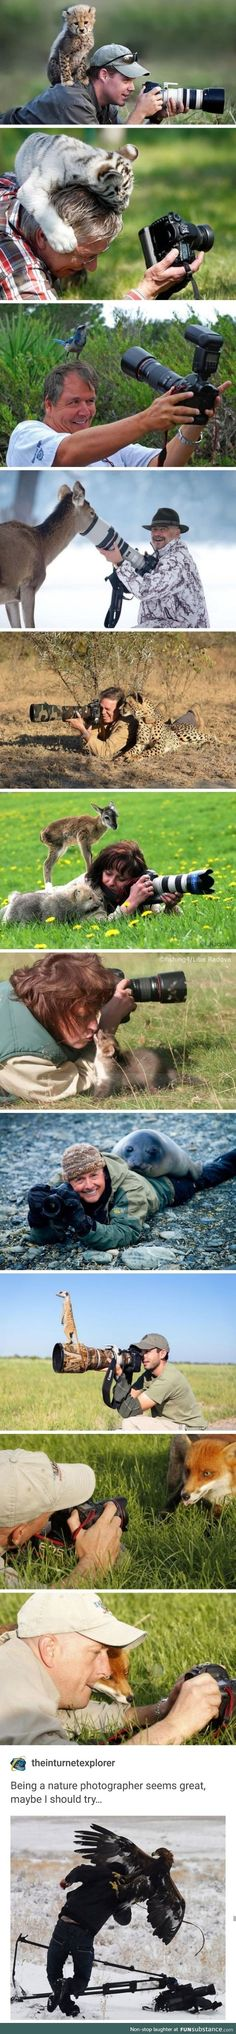 Online Photography Jobs - This is why I don't open iFunny in public Photography Jobs Online Funny Animal Memes, Cute Funny Animals, Funny Animal Pictures, Cute Baby Animals, Funny Cute, Animals And Pets, Funny Memes, Hilarious, Nature Animals